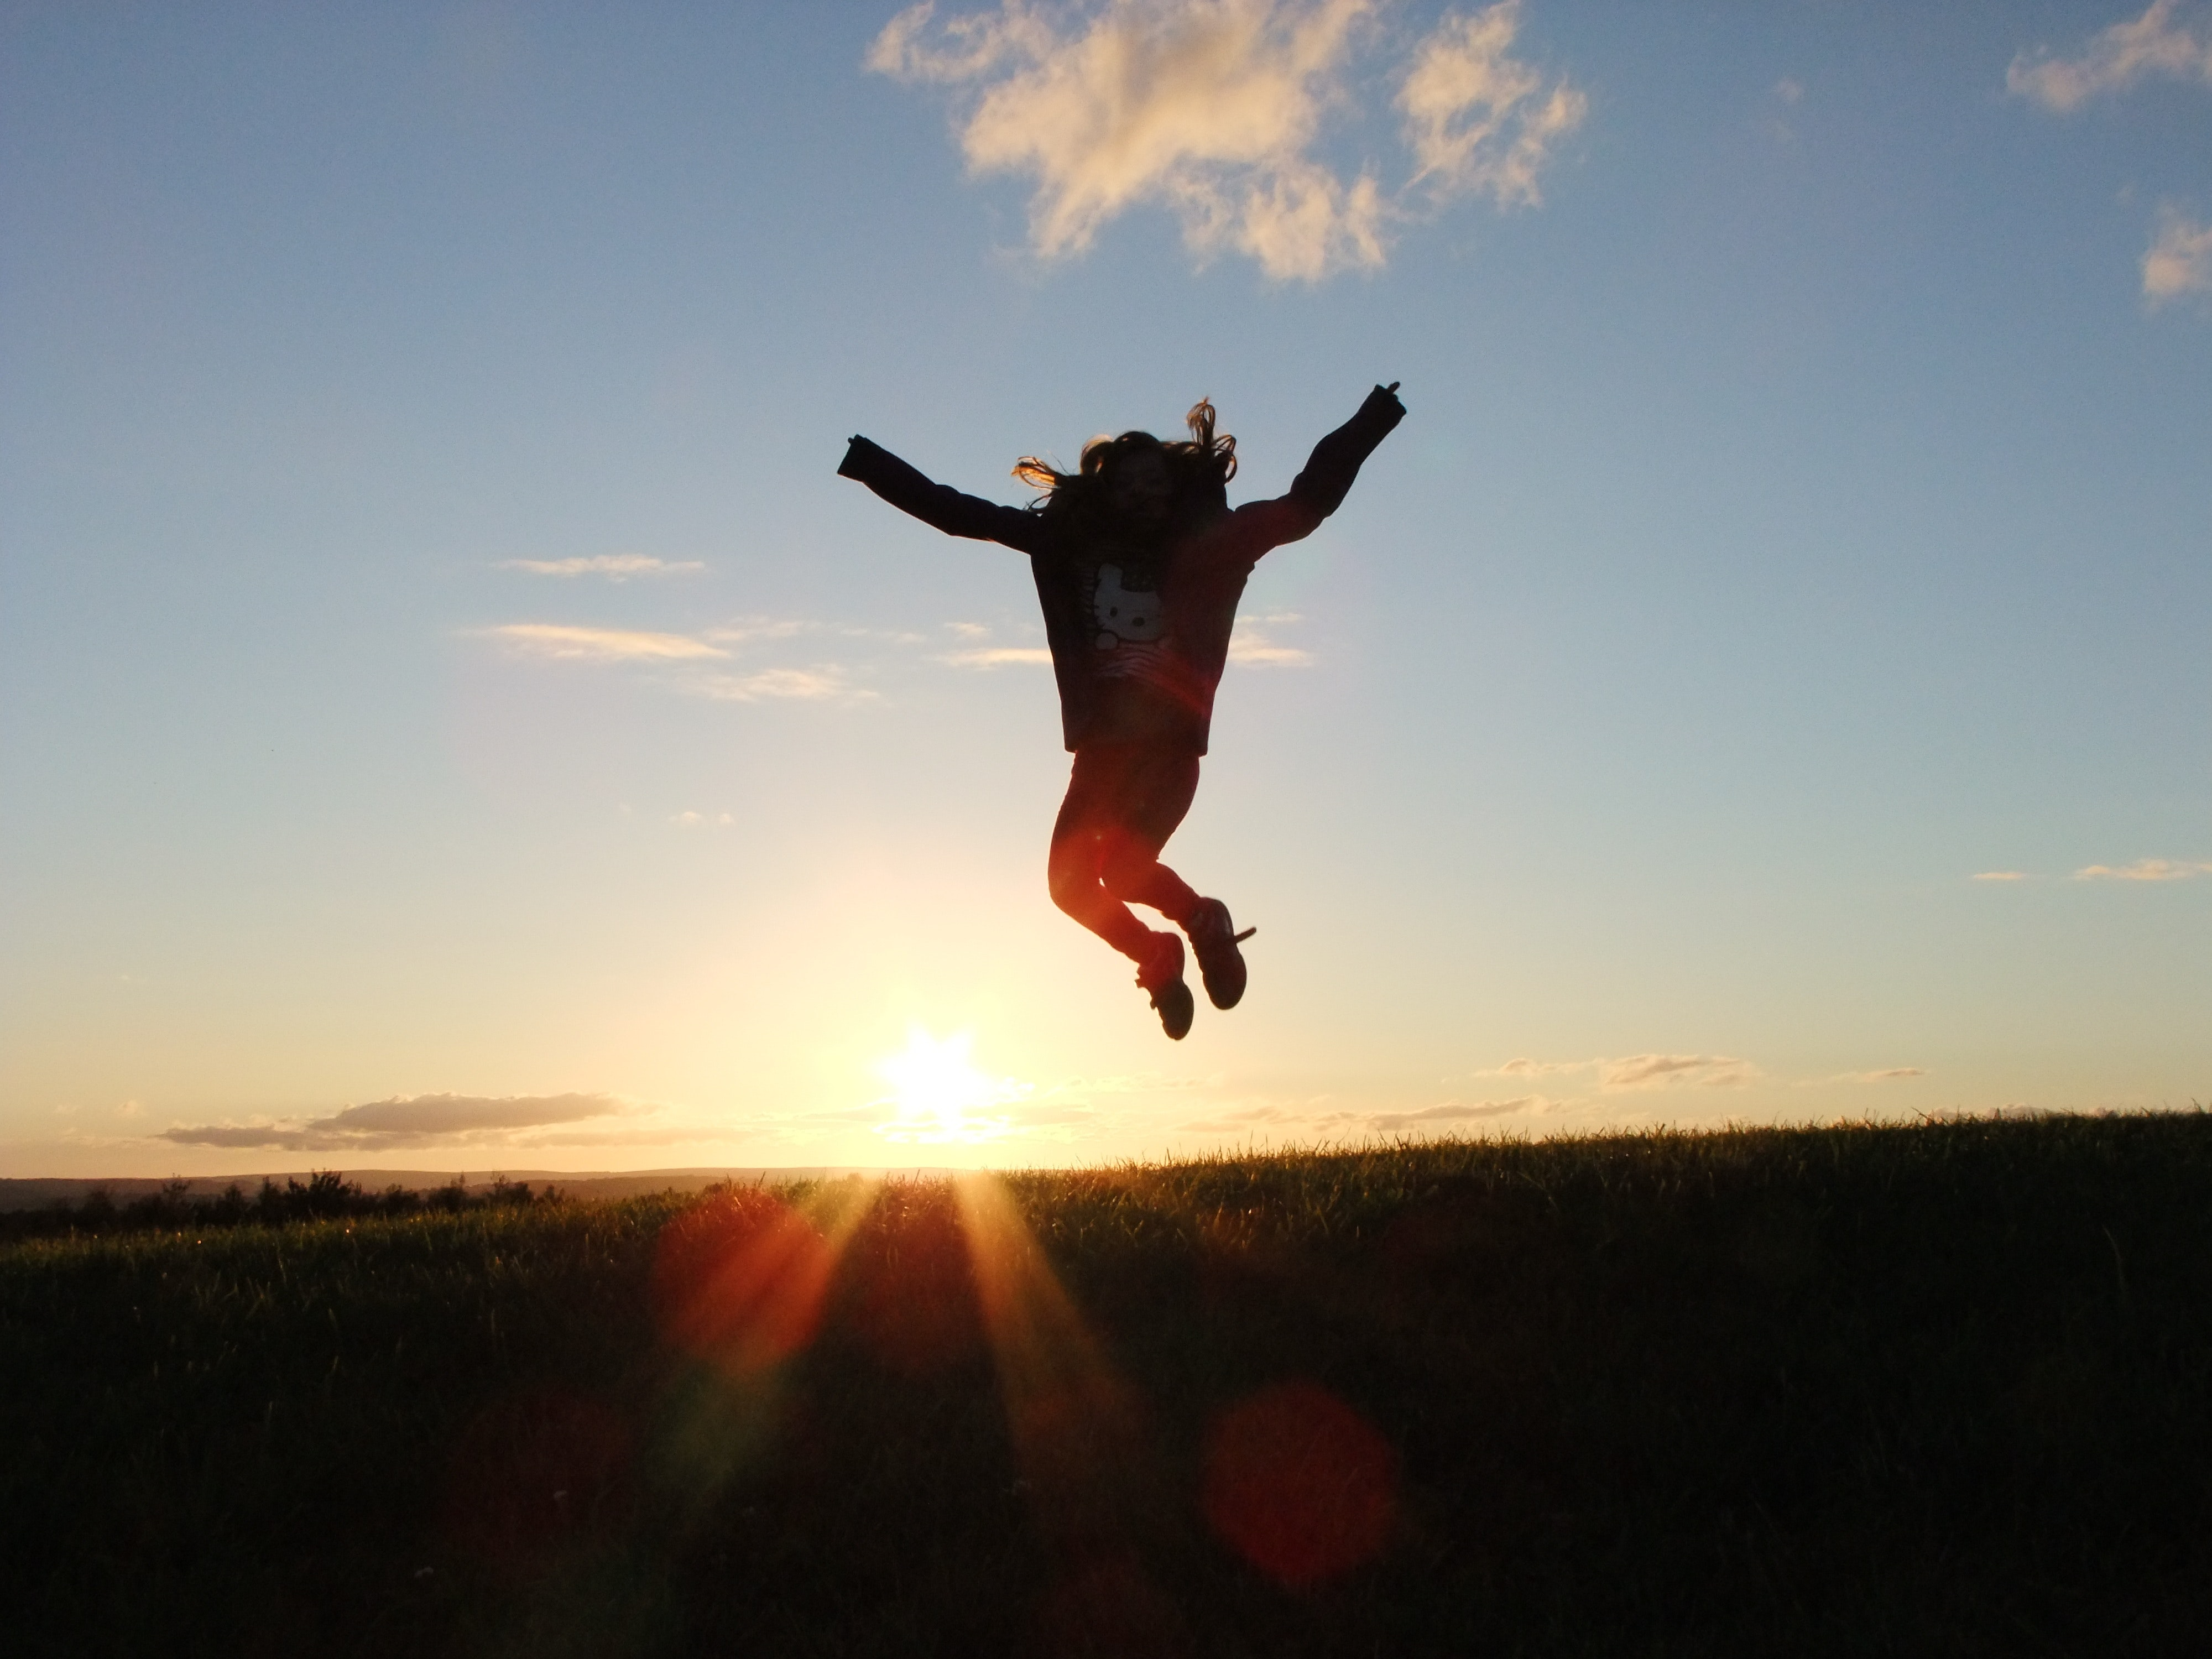 Silhouette Photo of a Person Jumping Nearby Green Grass Field during ...